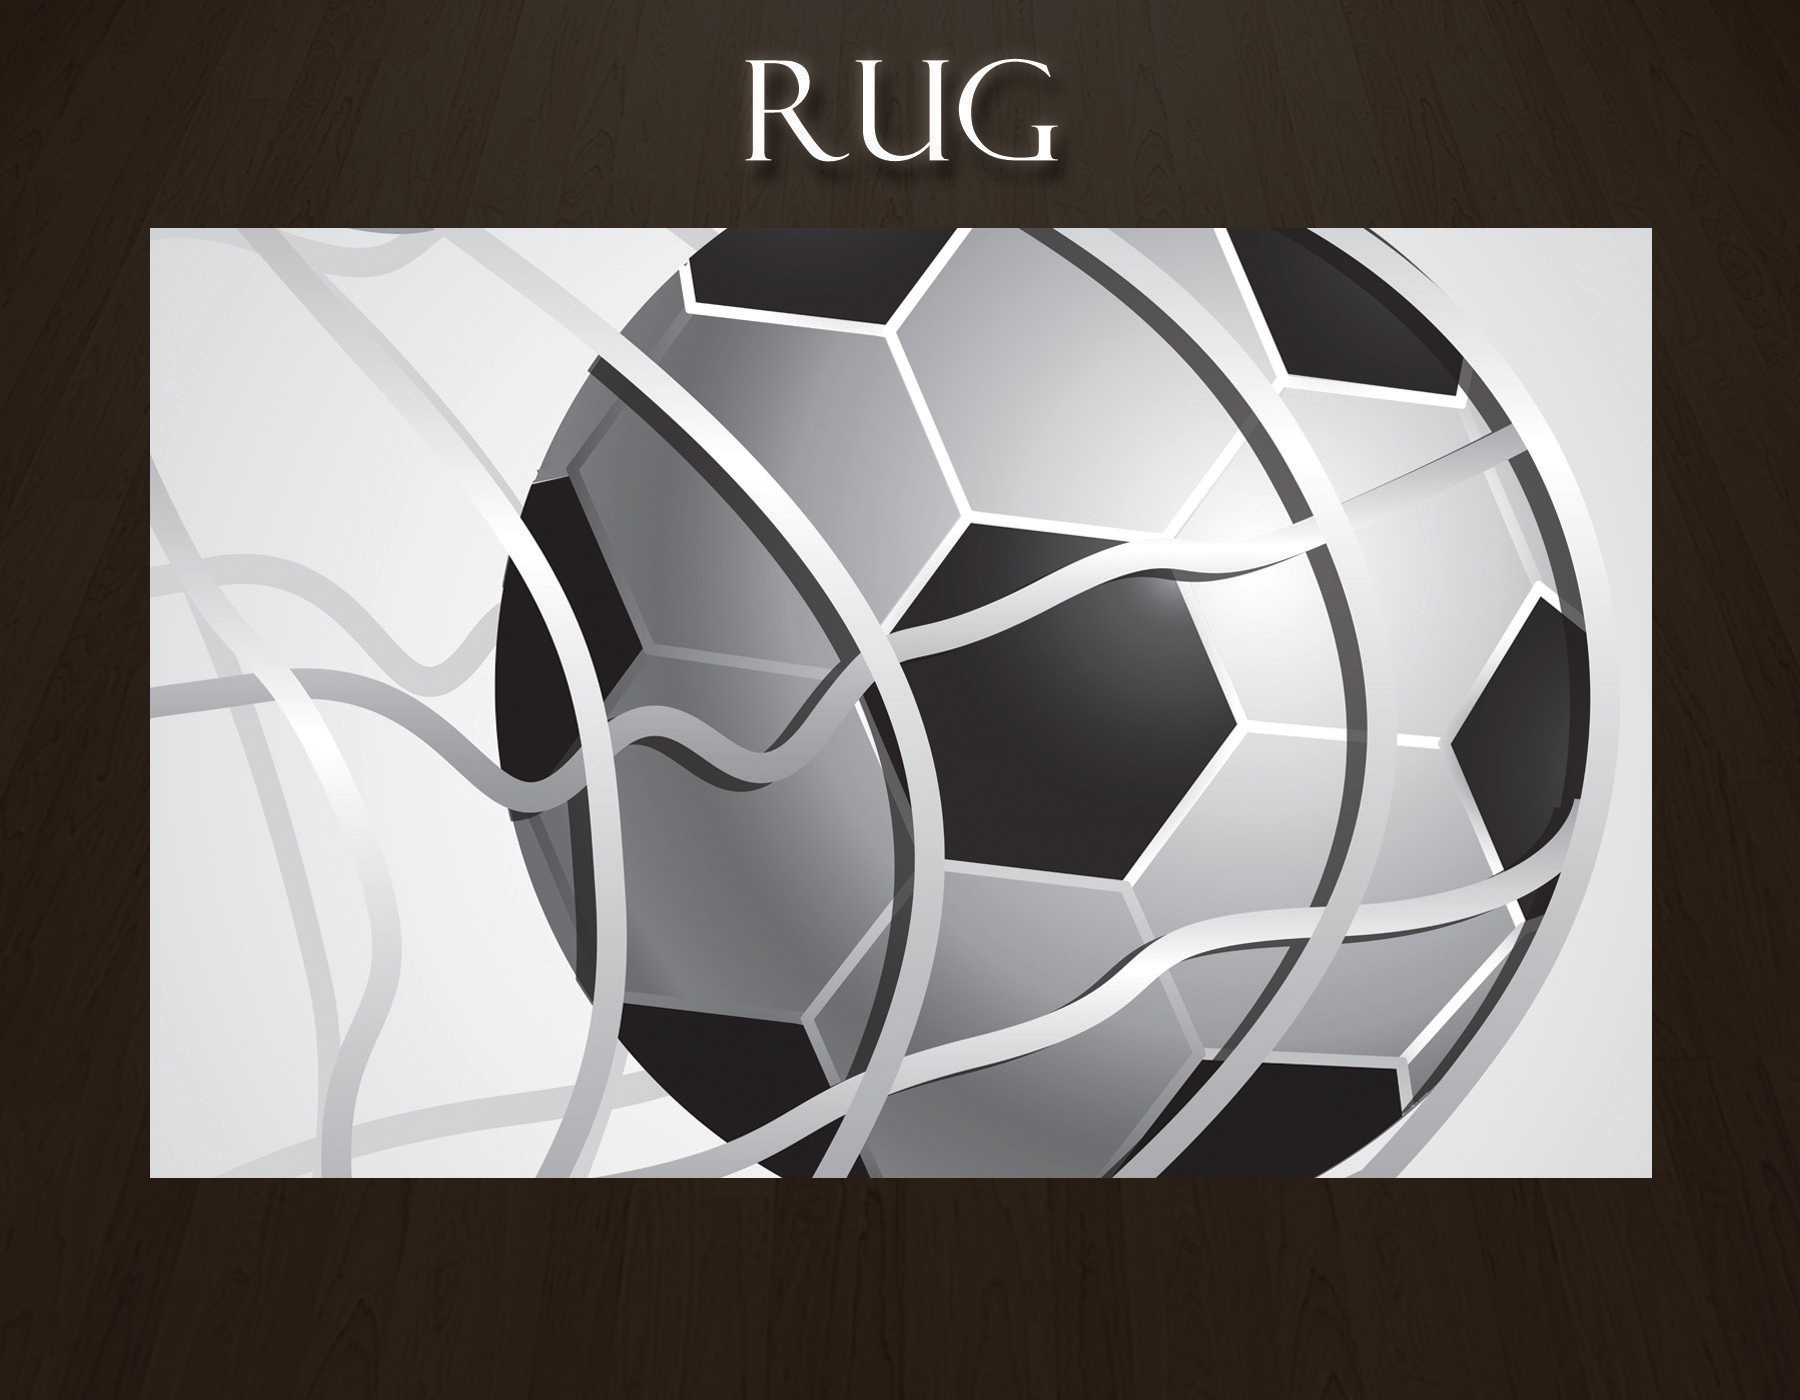 Sports Rug For Kids Room In Black And White Soccer Ball Theme 13